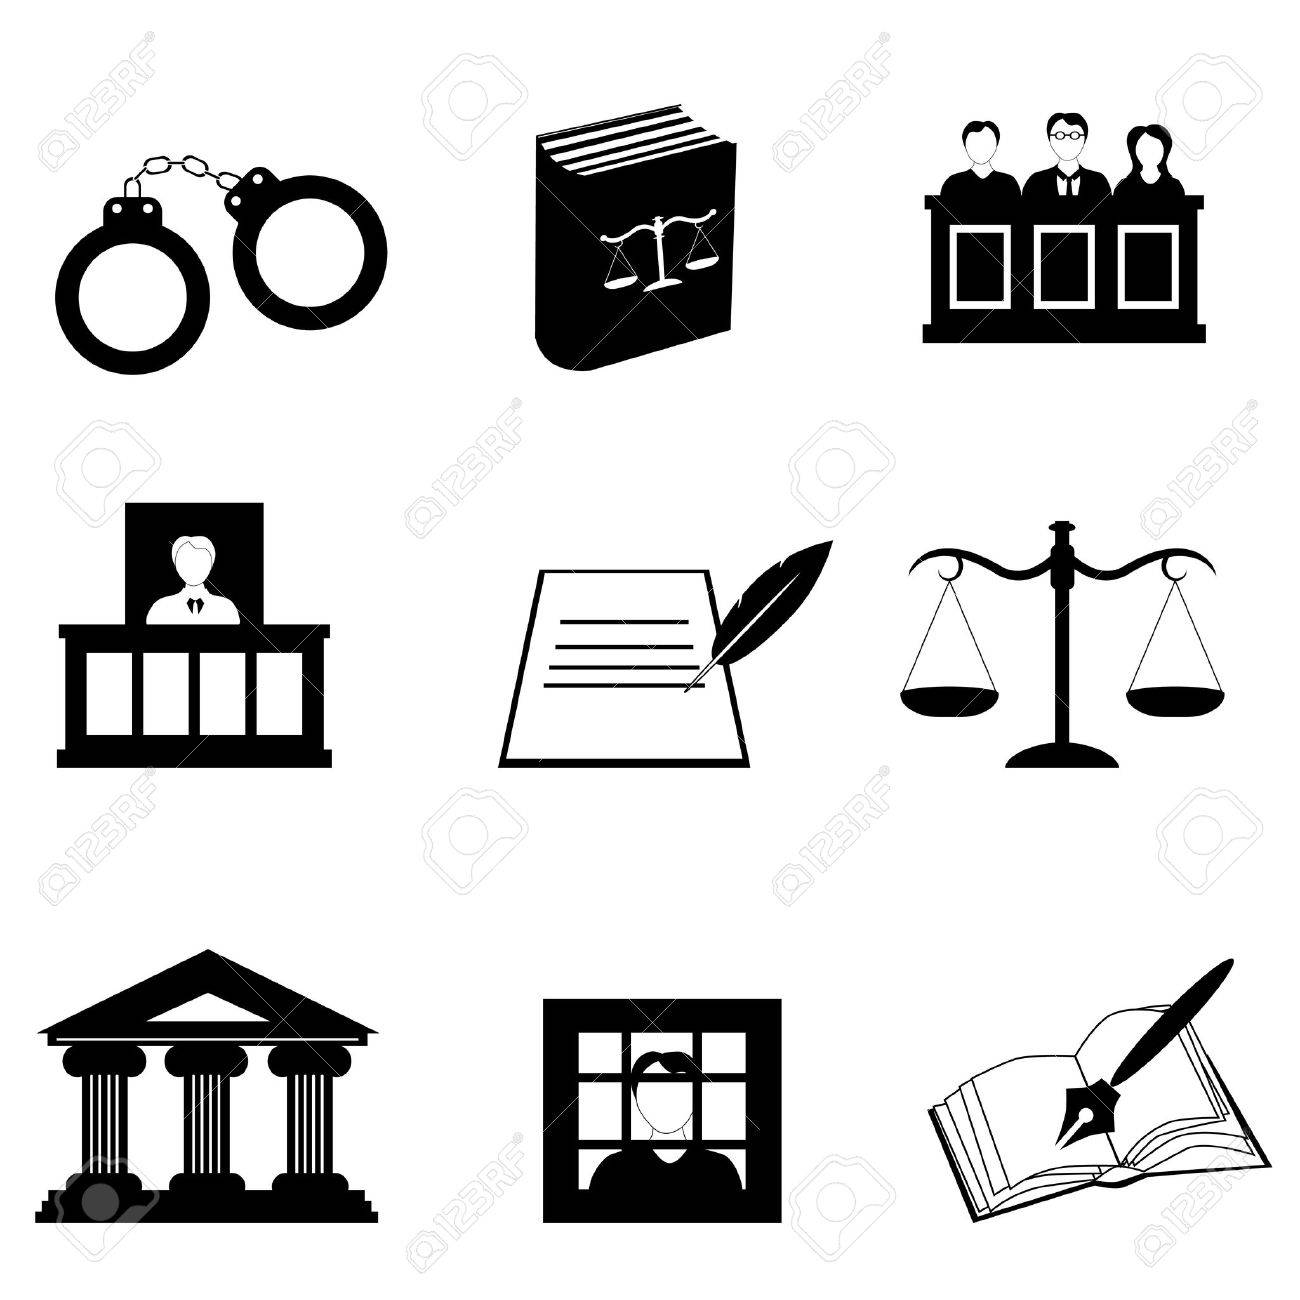 Justice, law and legal icon set Stock Vector - 10282747